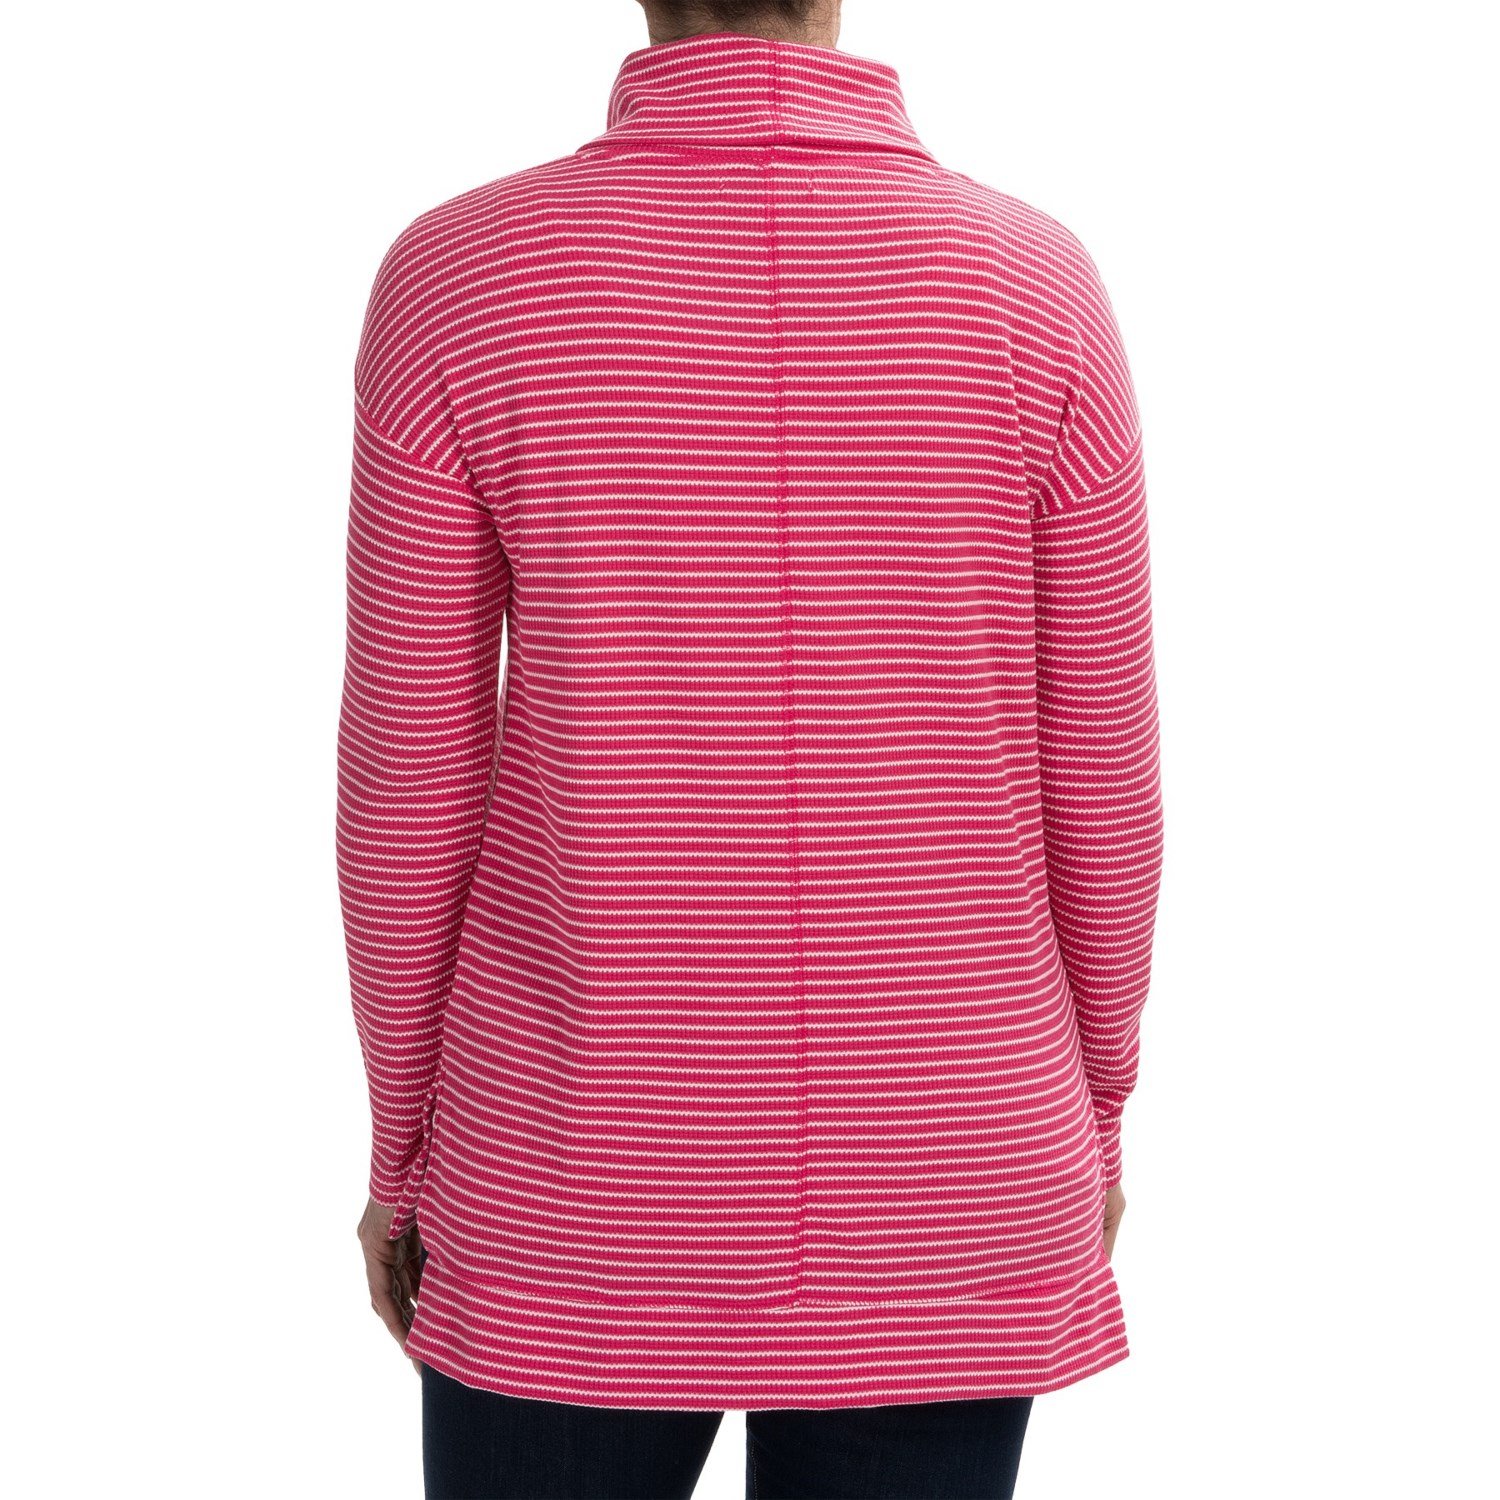 Thermal cowl neck shirt for women save 81 for Thermal shirt for women